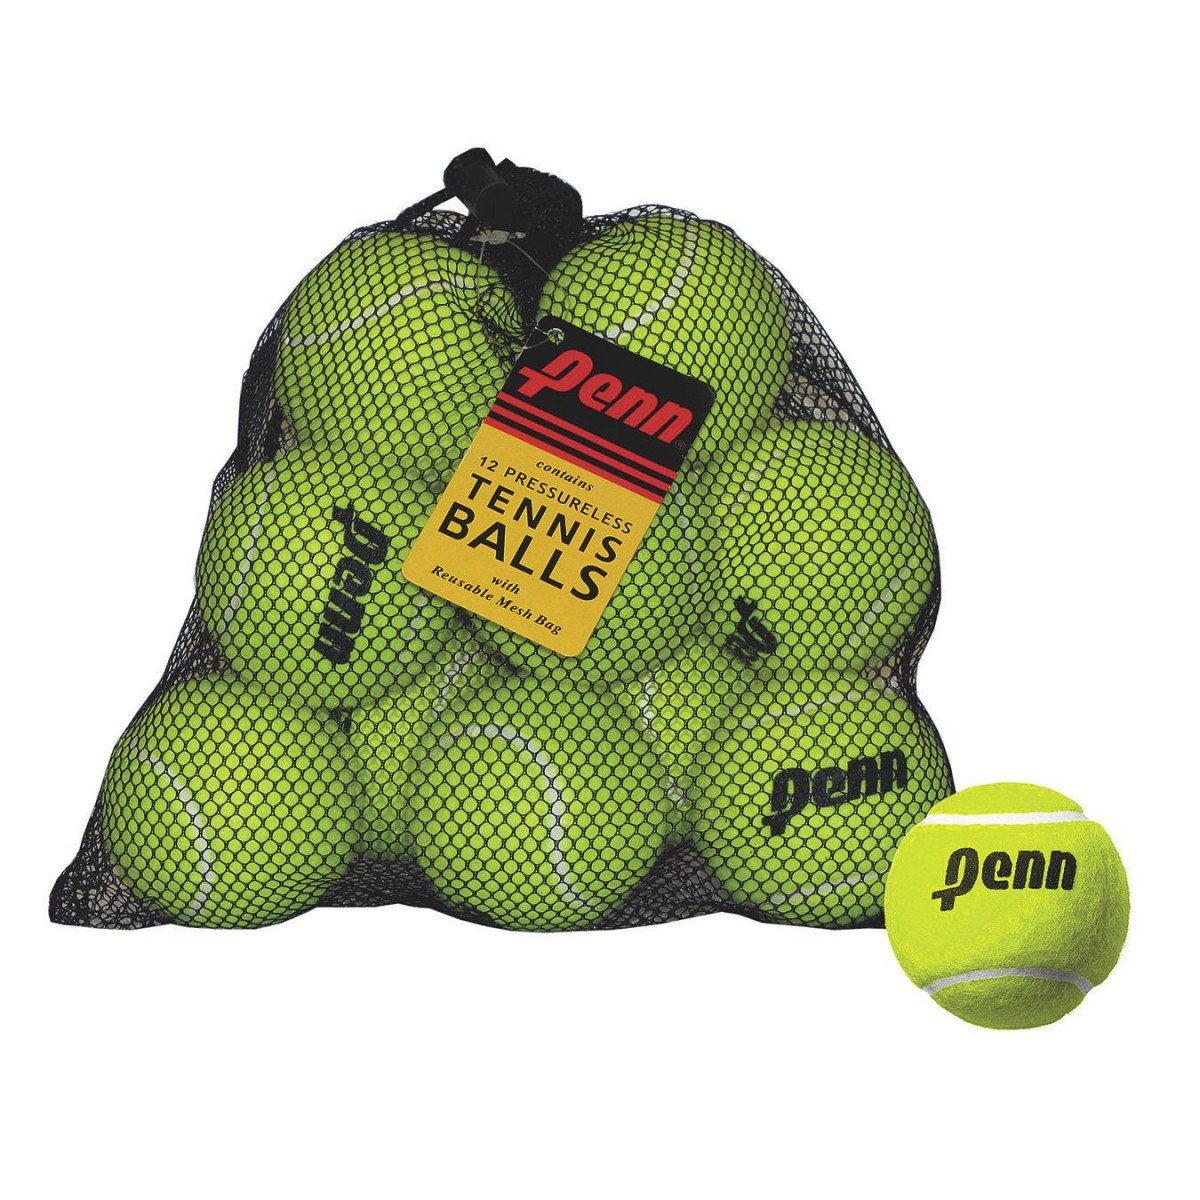 Penn Pressureless Tennis Balls, 12 Ball Mesh Bag Head 521812